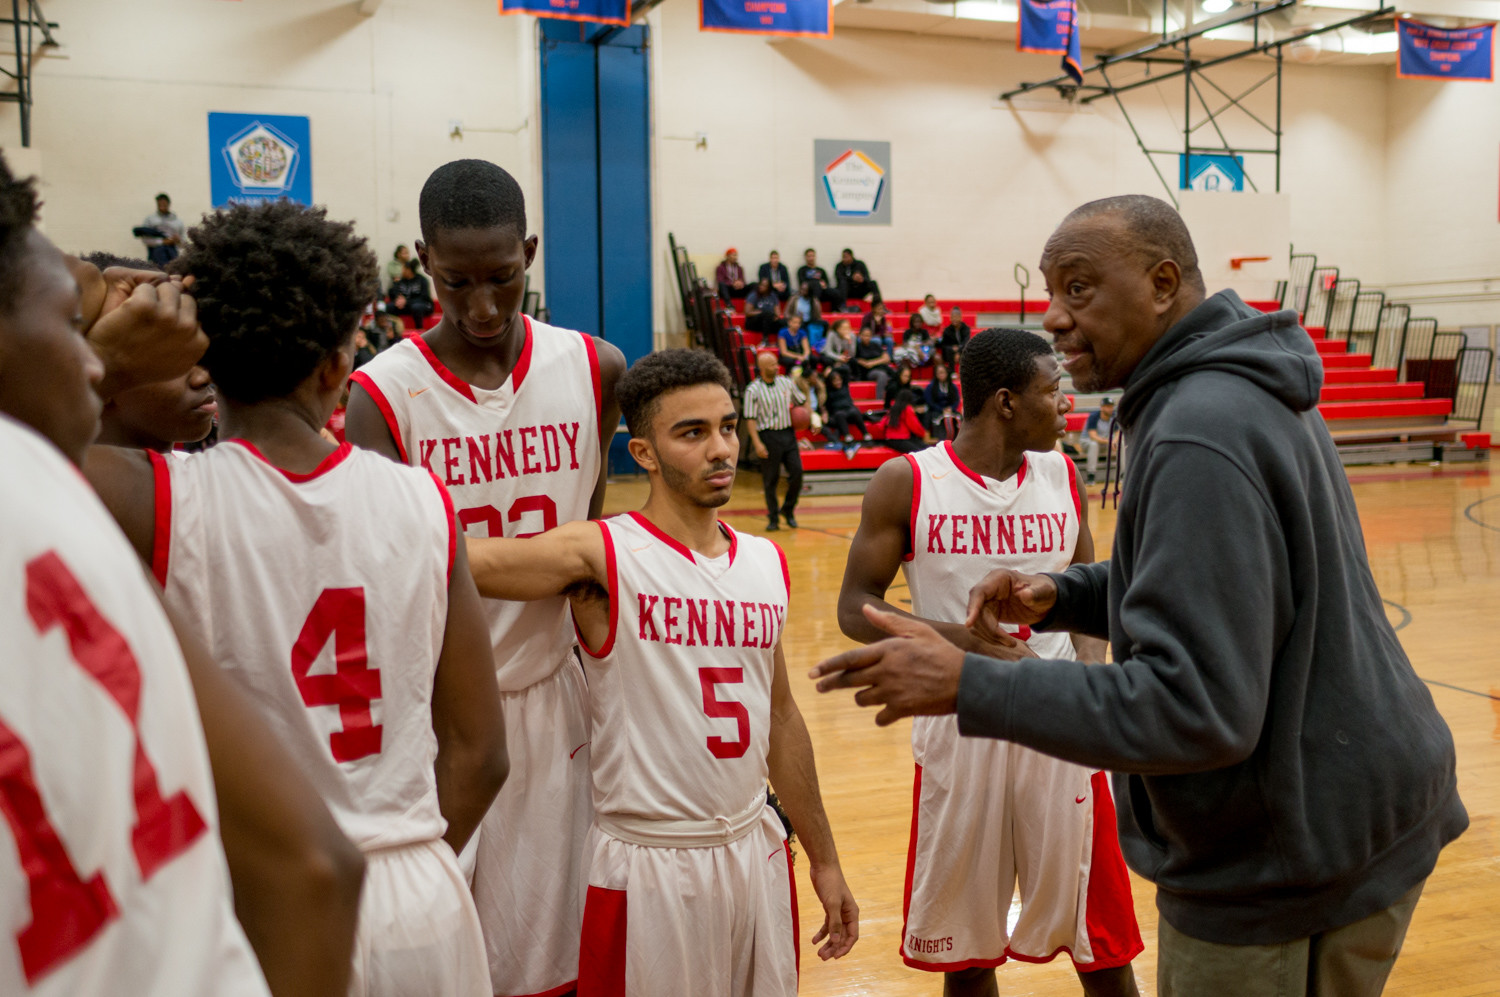 Kennedy head coach Johnny Mathis dishes some pearls of wisdom to Isaiah Malave and the rest of the Kennedy Knights in their game versus Truman.